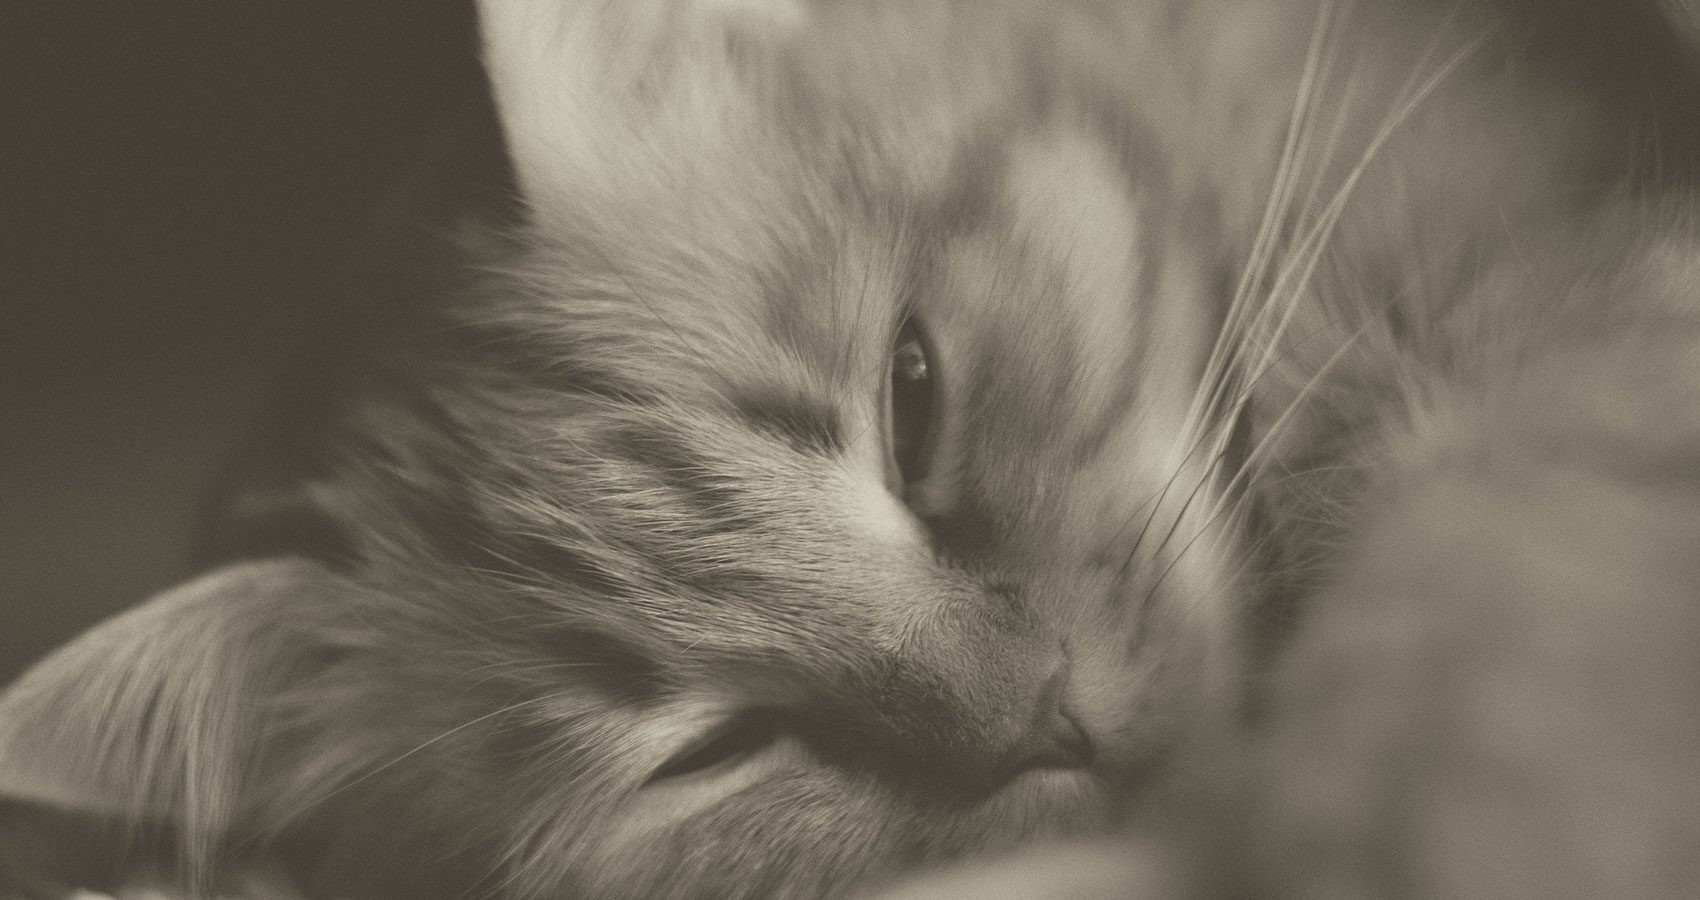 Missy The Cat's Diary, Sunday 10th of March 2019, short story written by Andrew Scobie at Spillwords.com